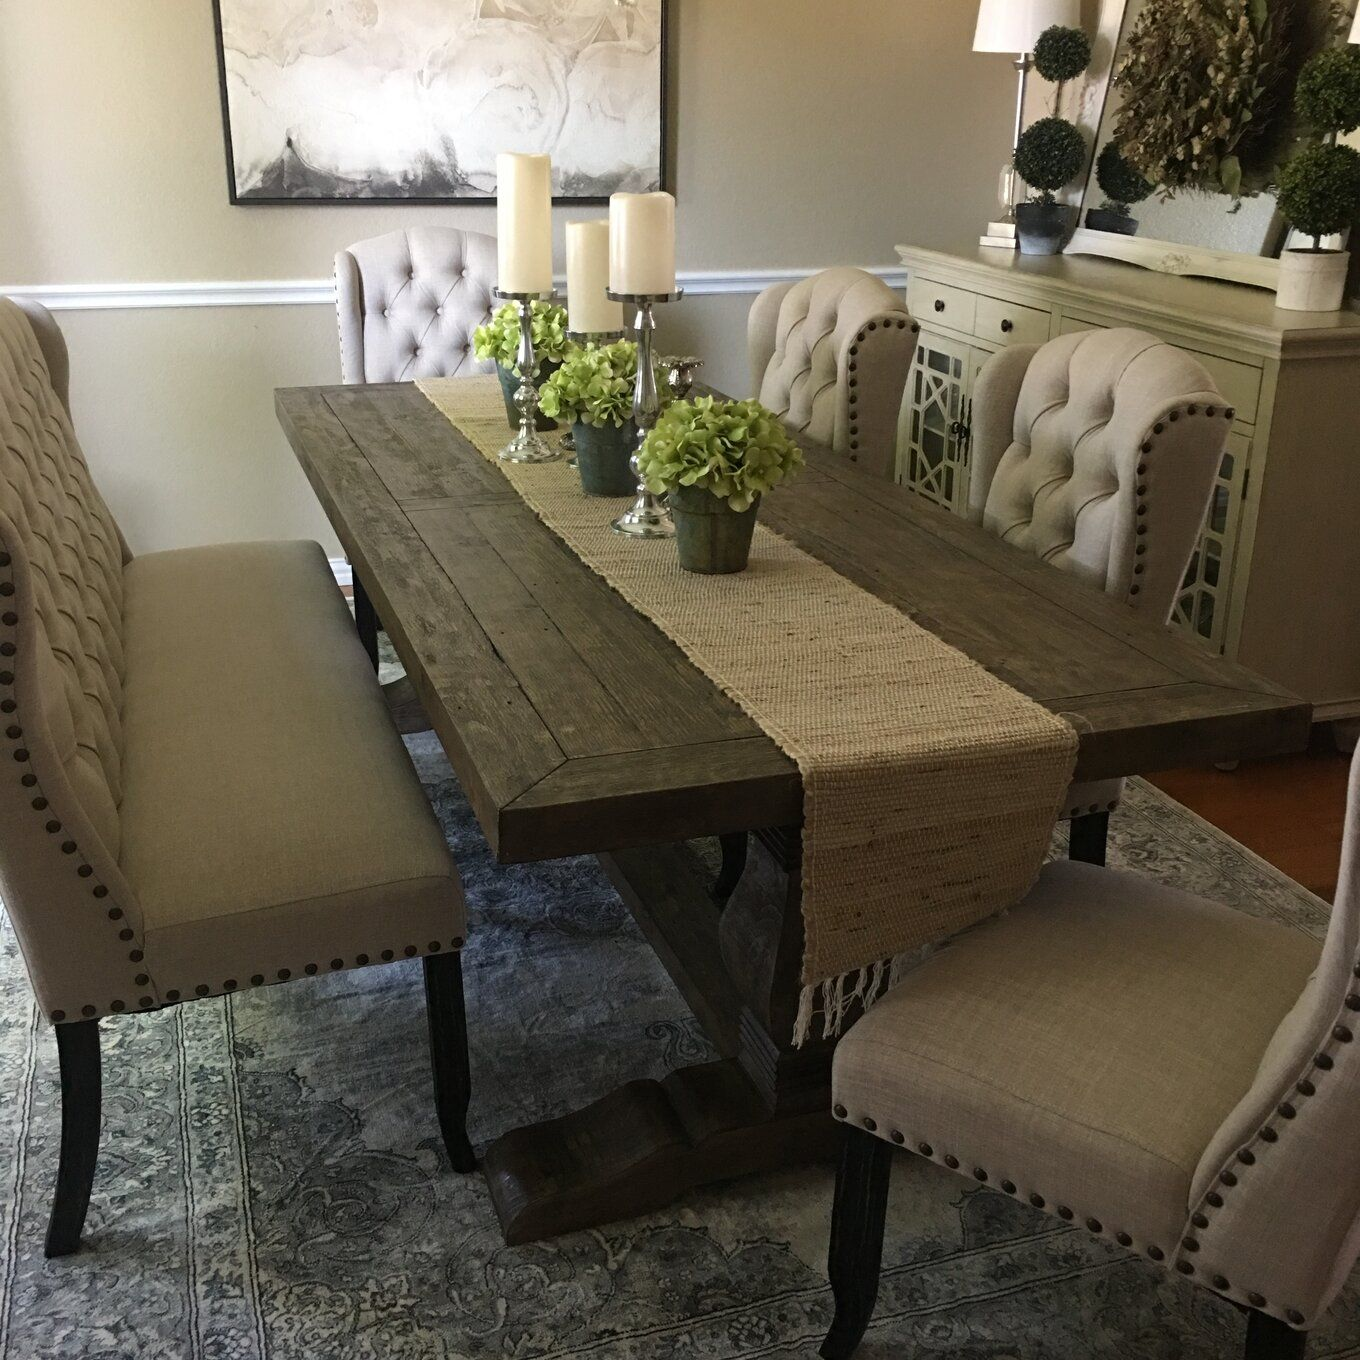 Lark Manor Gertrude Solid Wood Dining Table Reviews Wayfair Dinning Room Table Decor Dining Room Table Centerpieces Dining Room Table Decor